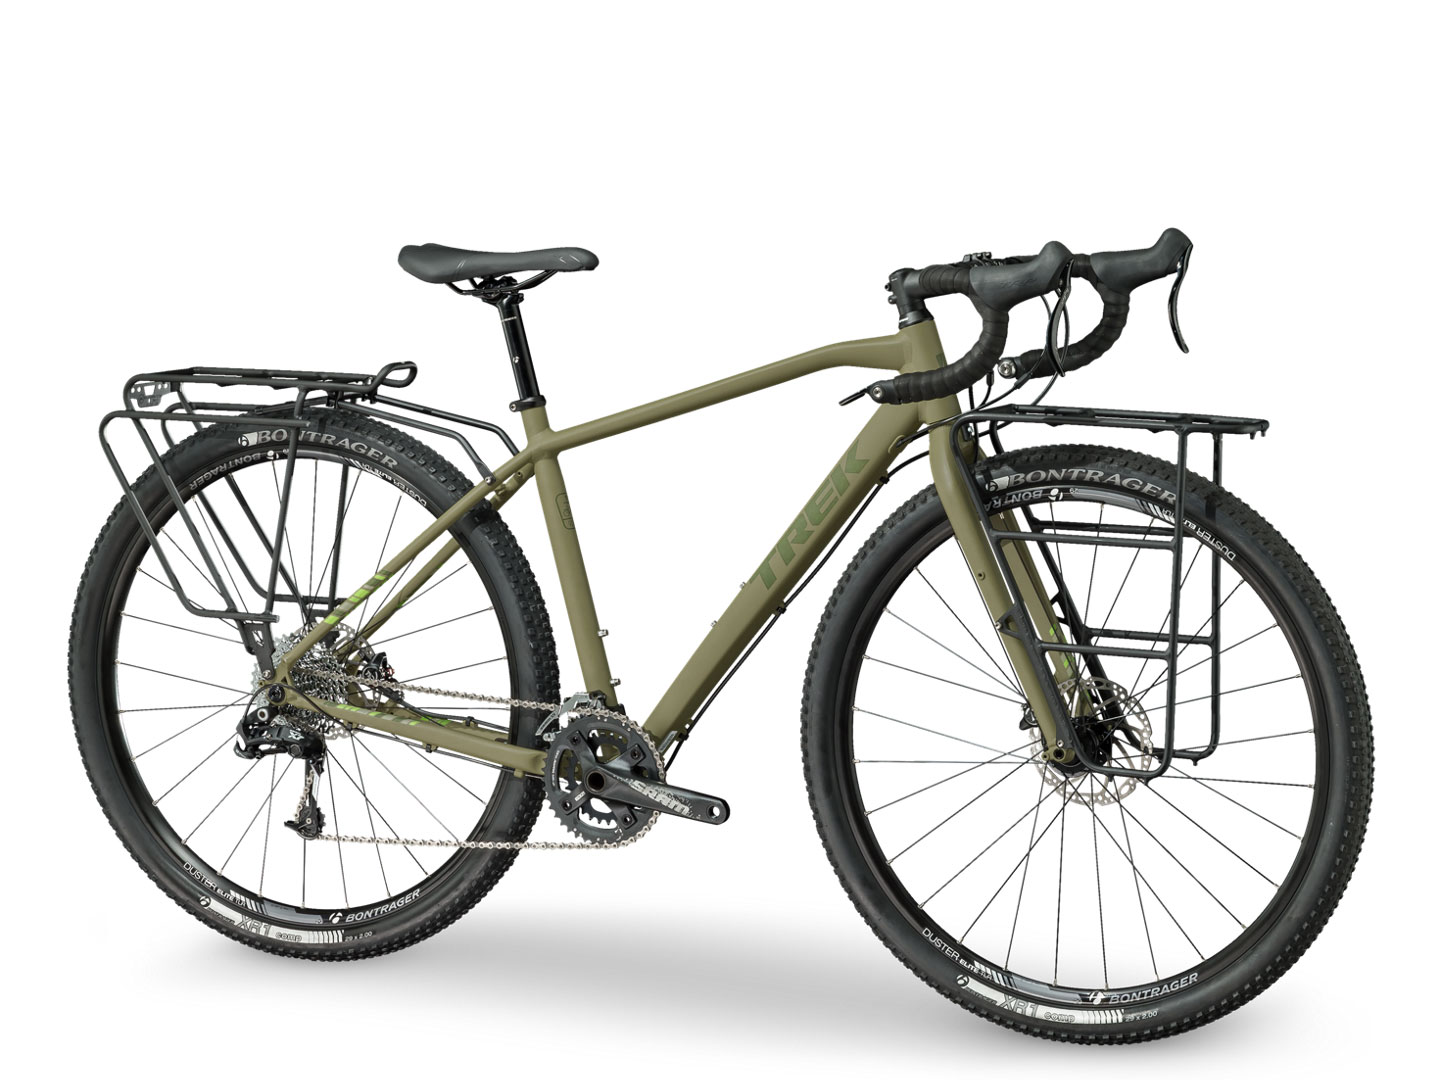 Trek shows off three killer gravel/touring bikes, giving ...